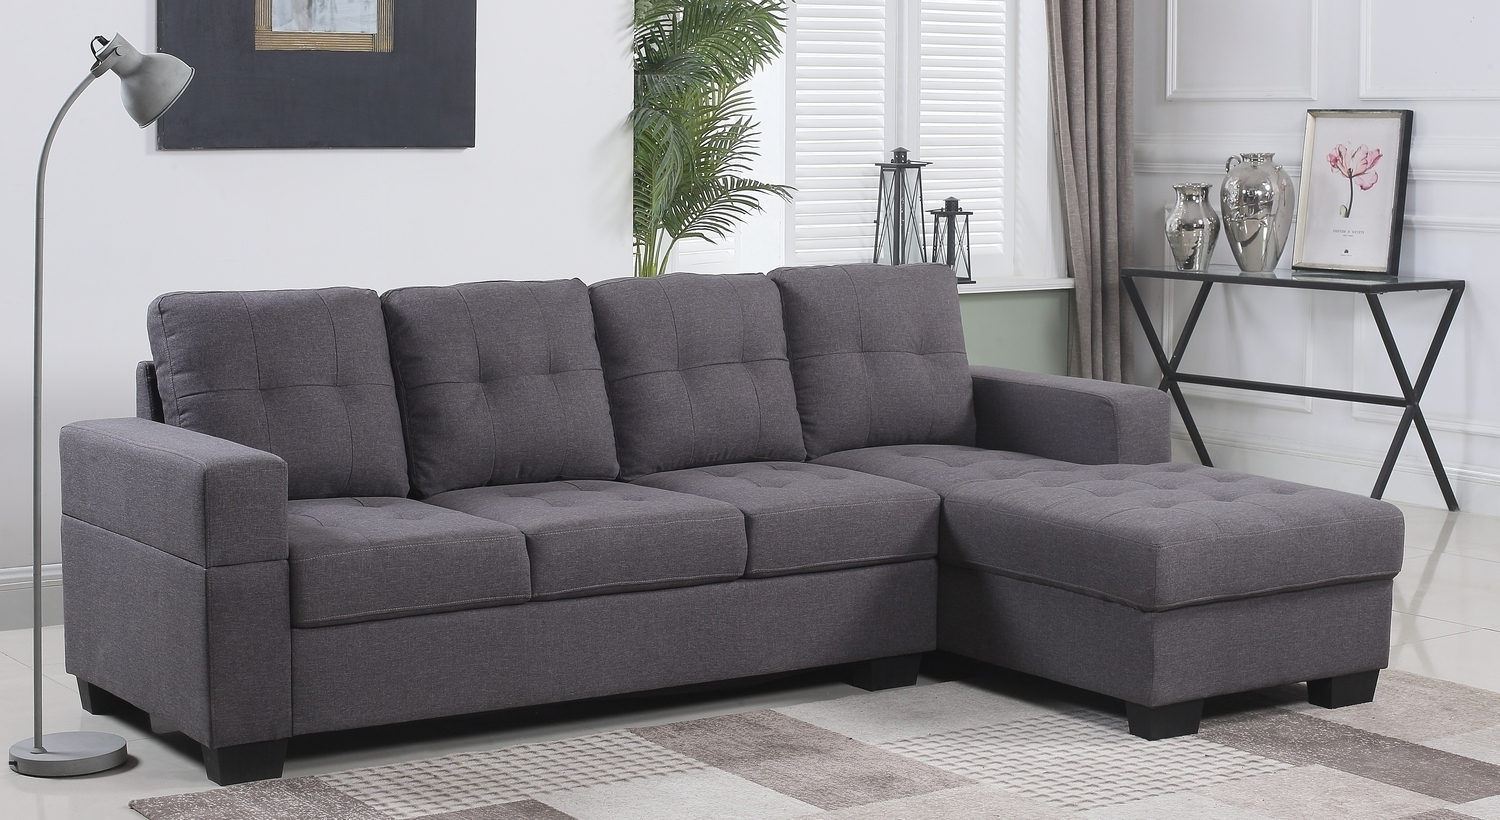 Scarborough Sectional Sofas In Best And Newest Comfort Night (View 14 of 15)